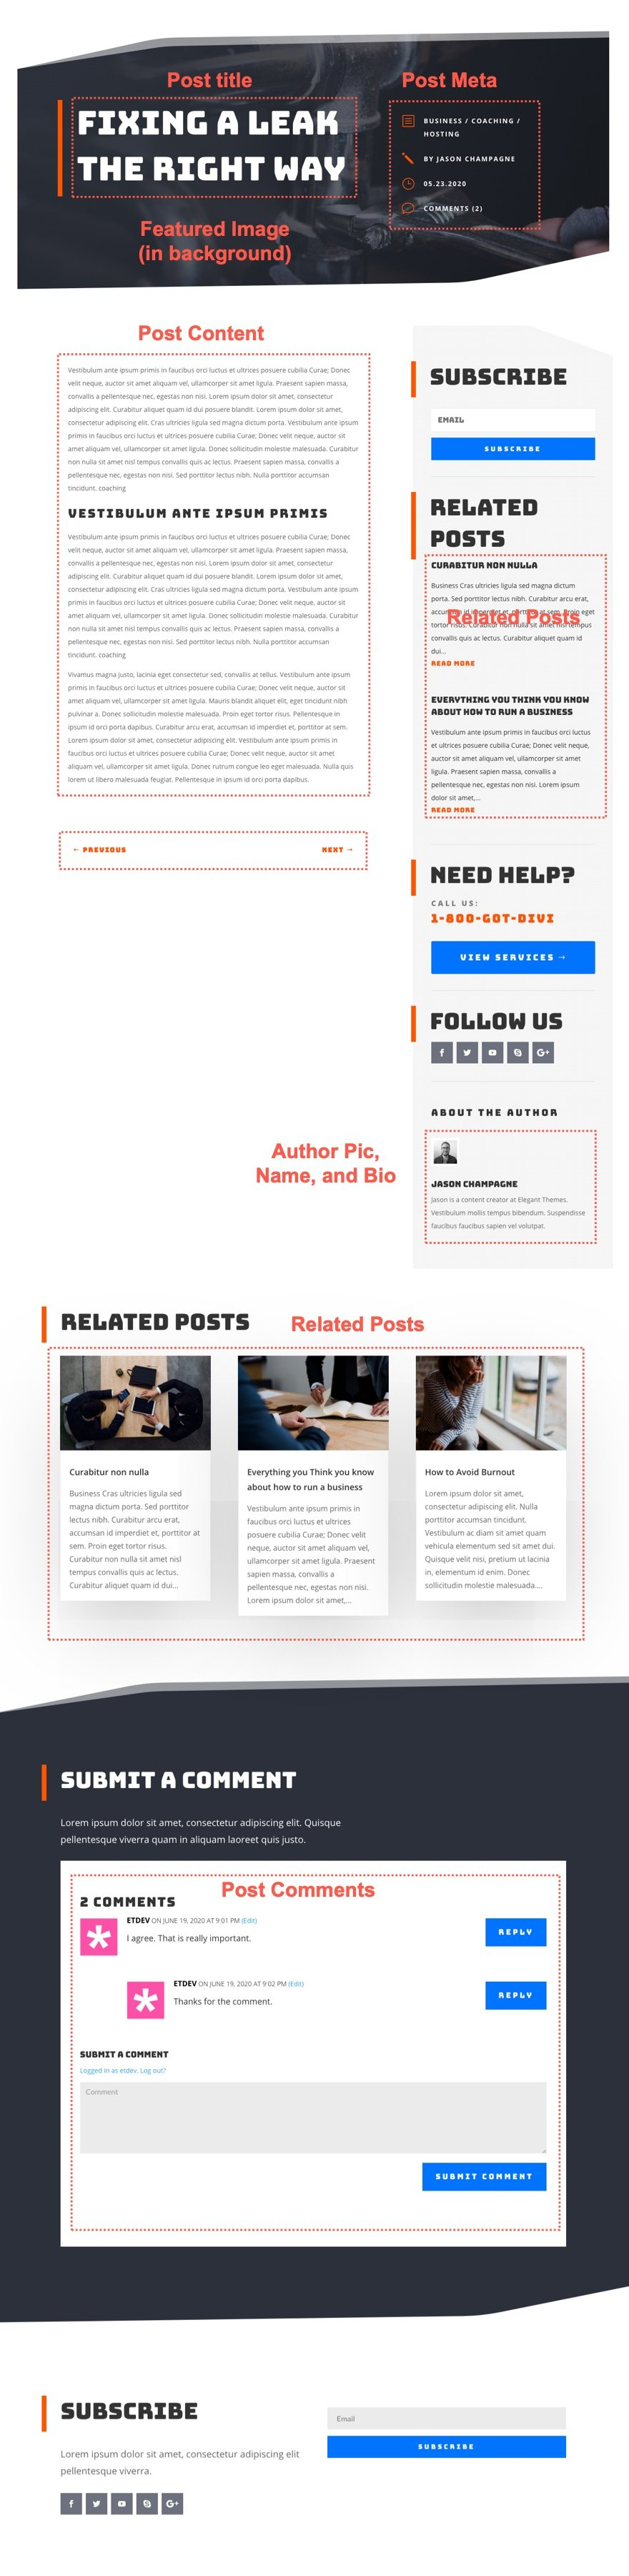 get-a-free-blog-post-template-for-divis-handyman-layout-pack-7 Get a FREE Blog Post Template for Divi's Handyman Layout Pack